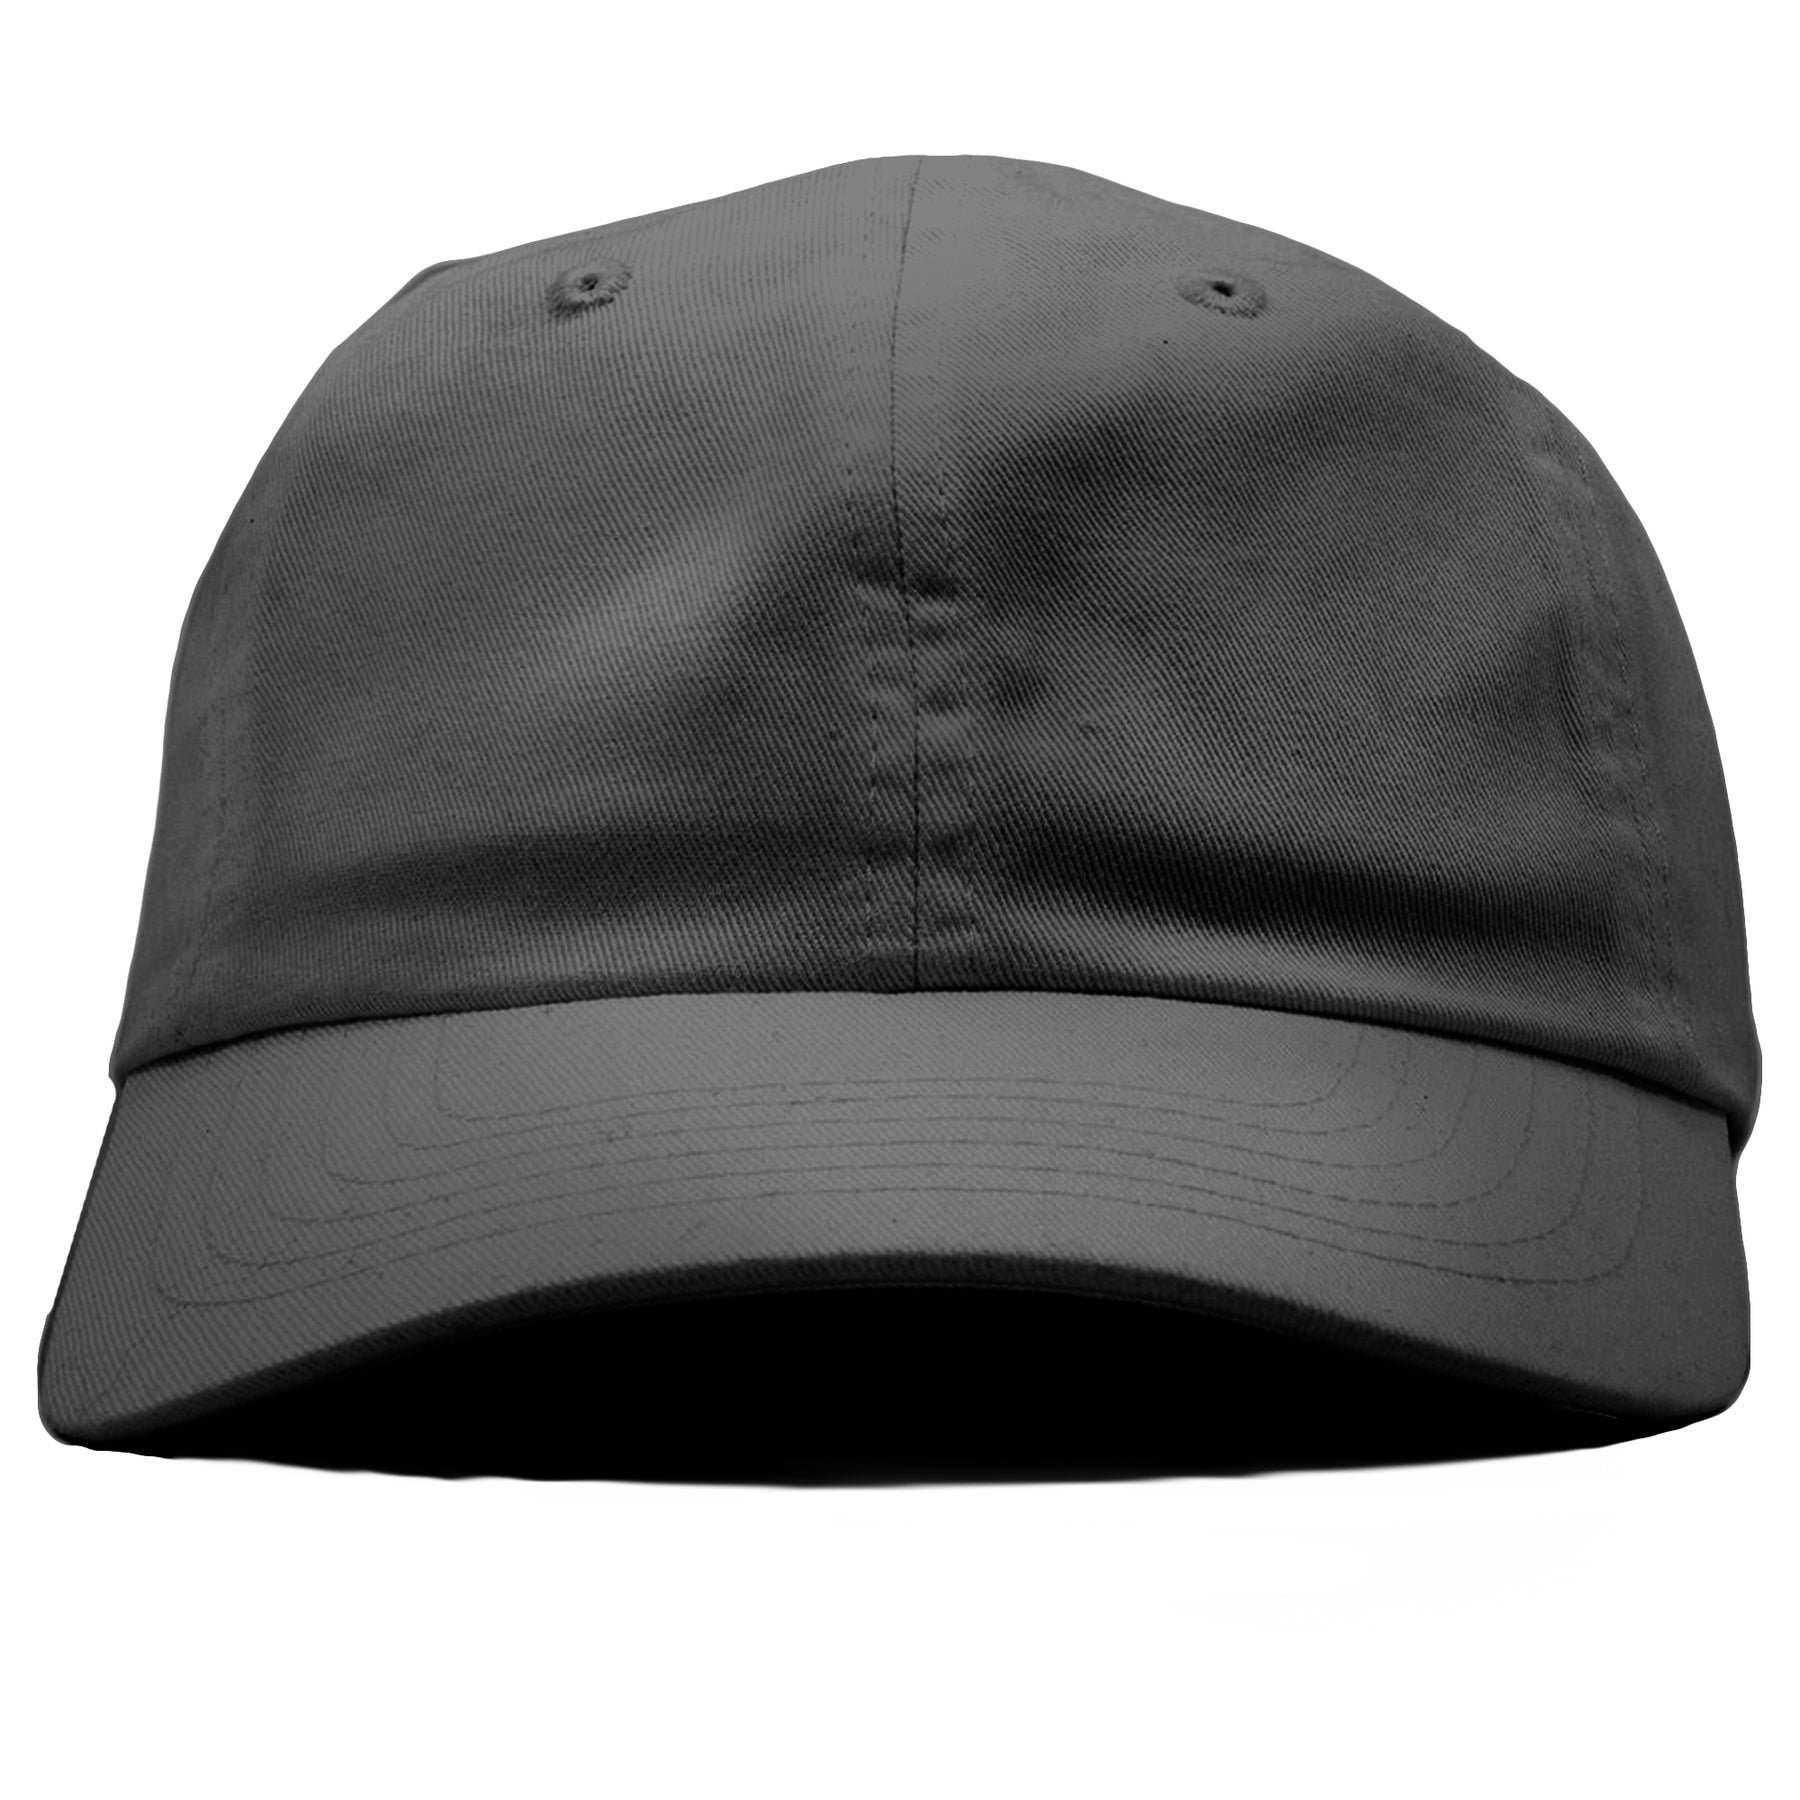 e00b8a0bae707 The blank dark gray dad hat has no design on the front